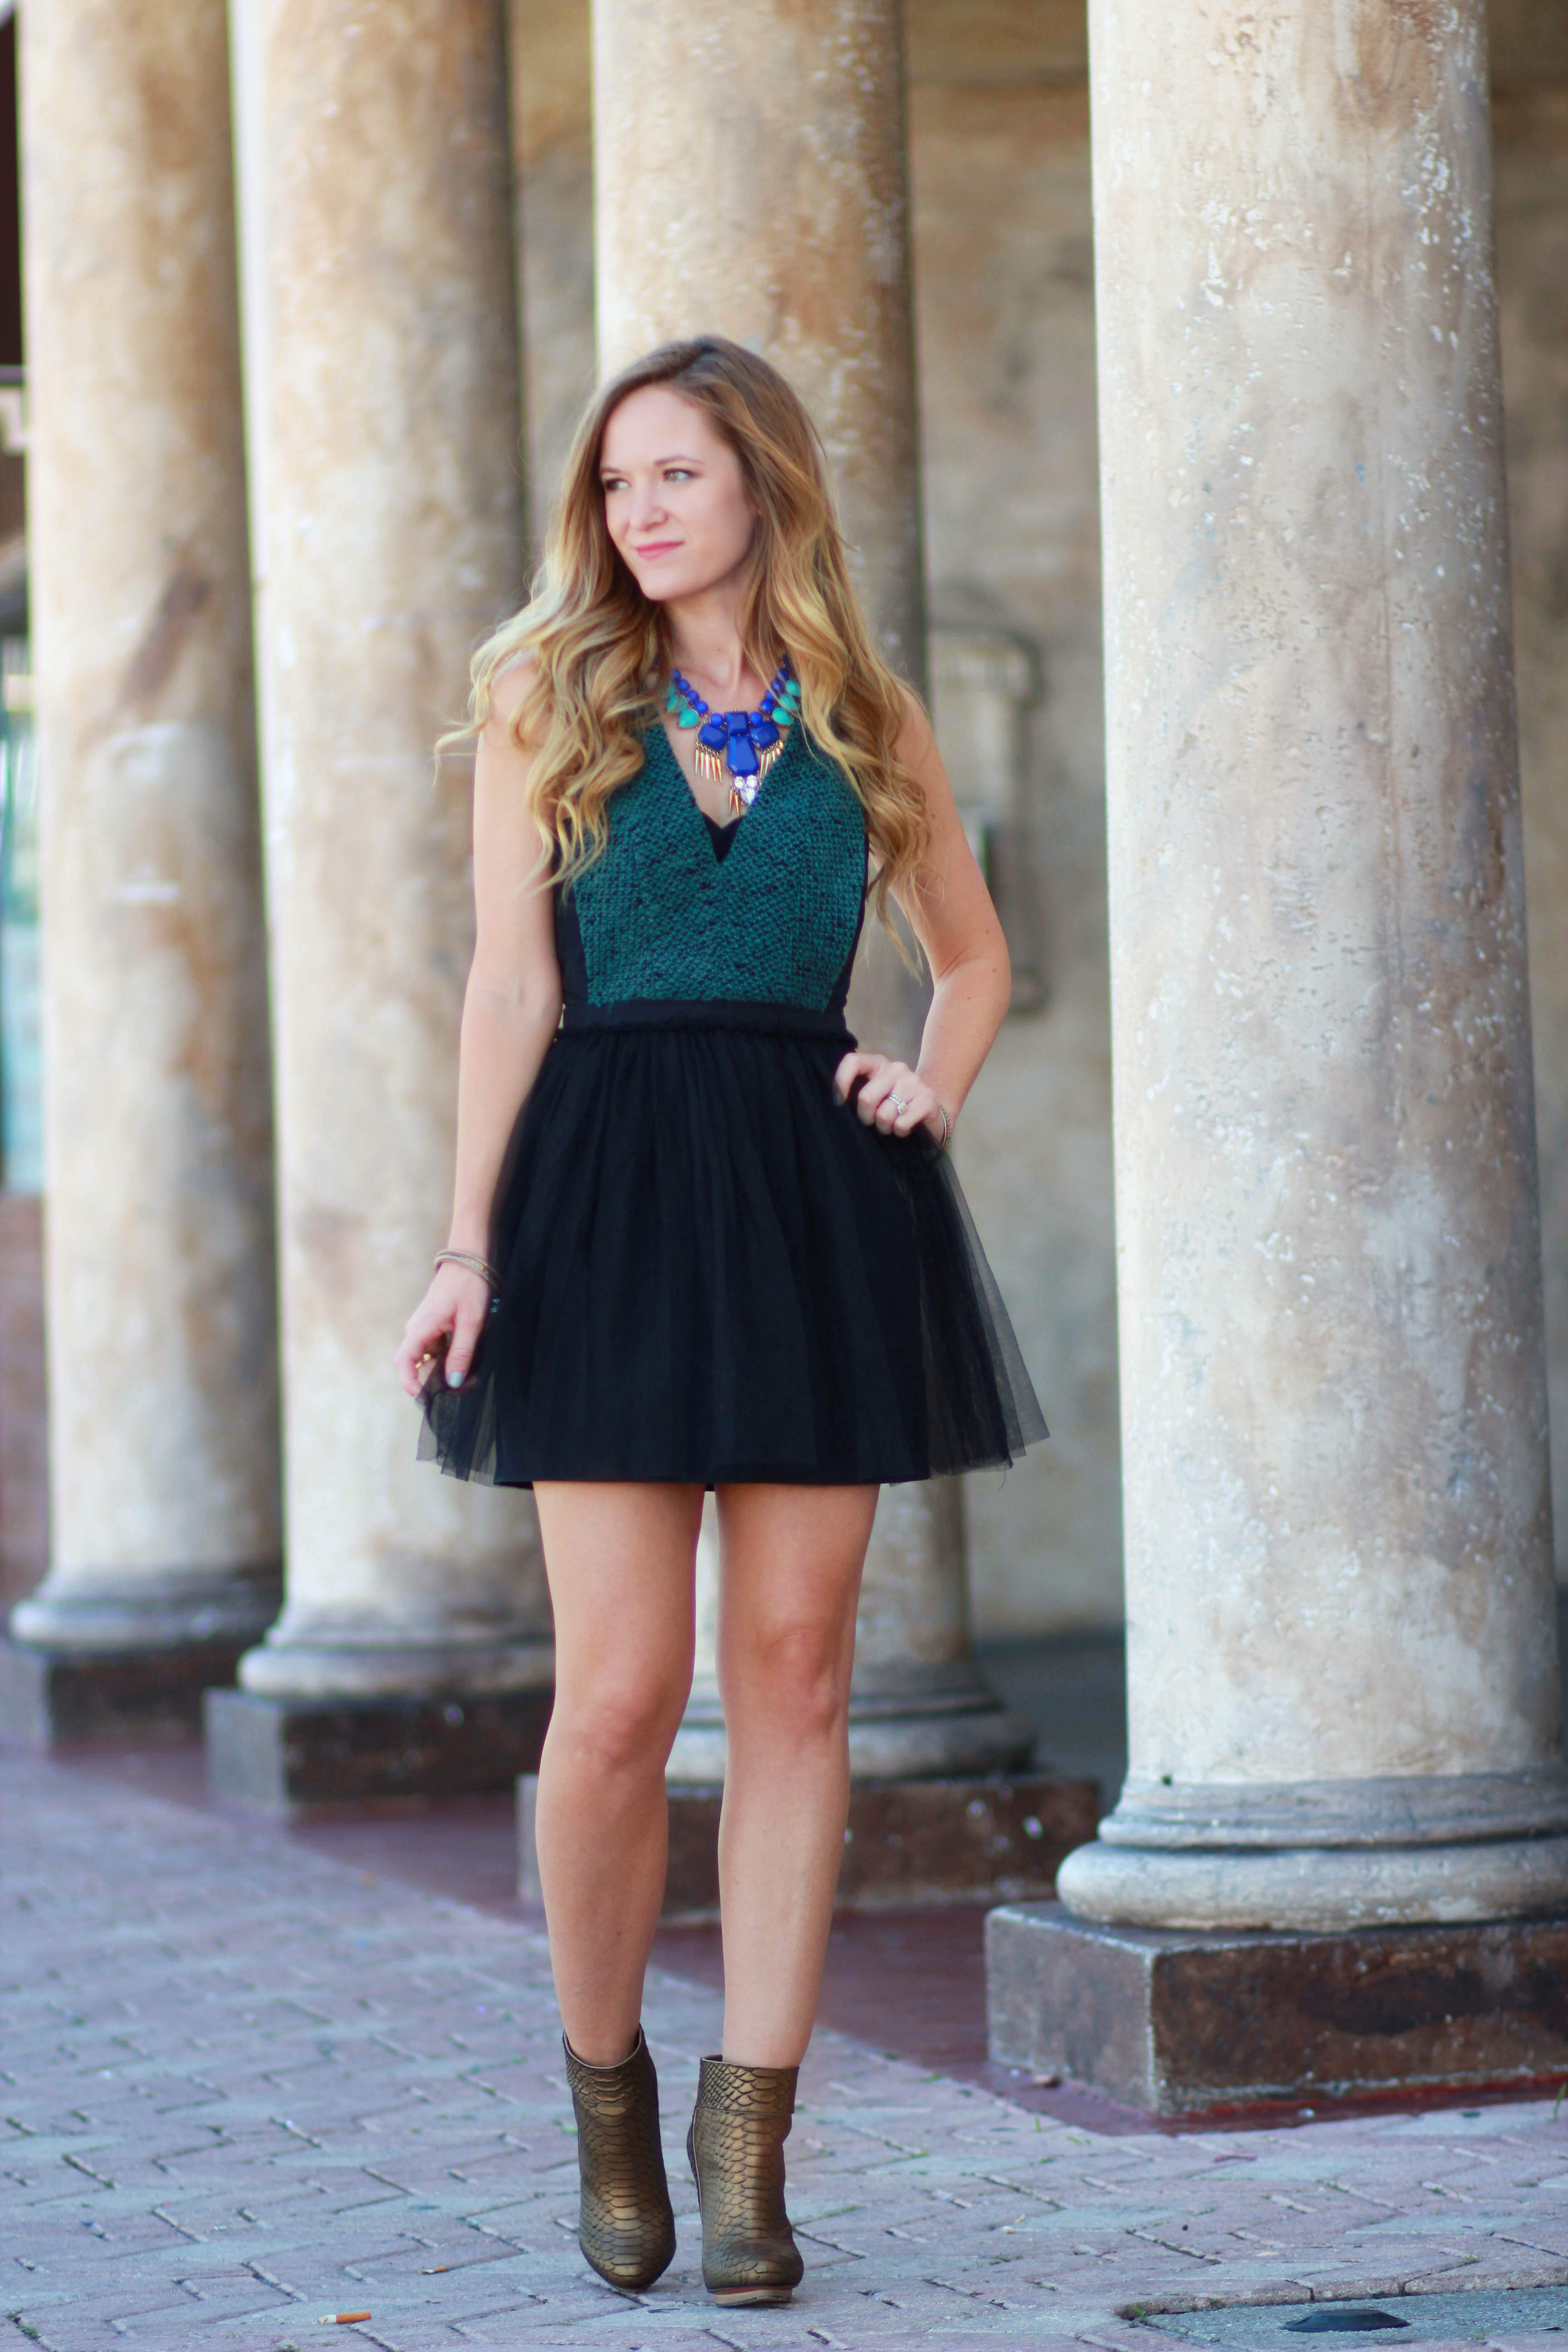 florida/ orlando fashion blogger styles tulle bcbgeneration dress and tjmaxx booties for a party outfit